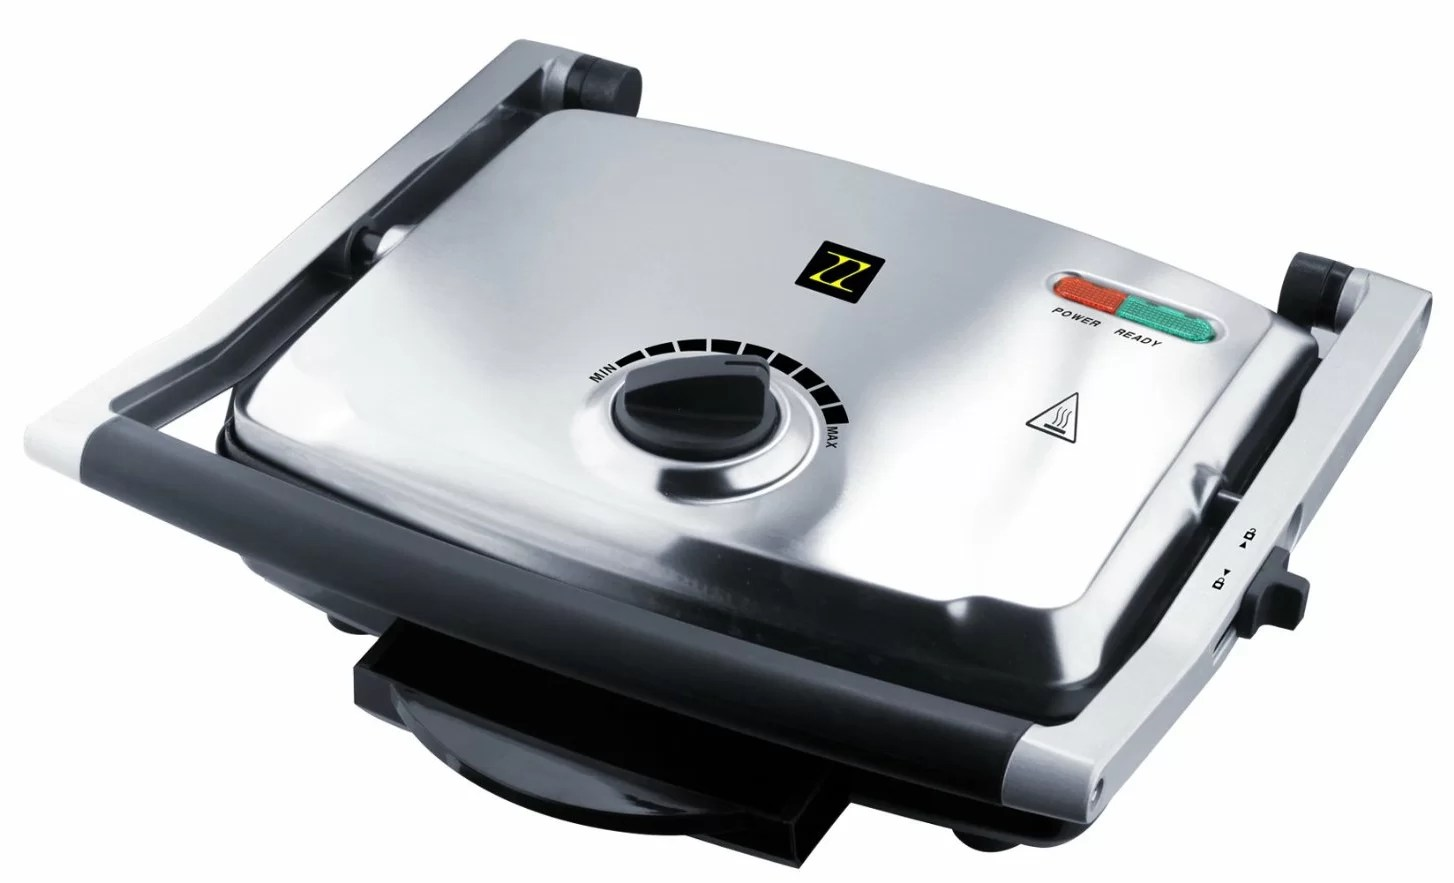 Grille Panini Z Z Inc Gourmet Health Grill Panini Press And Sandwich Maker